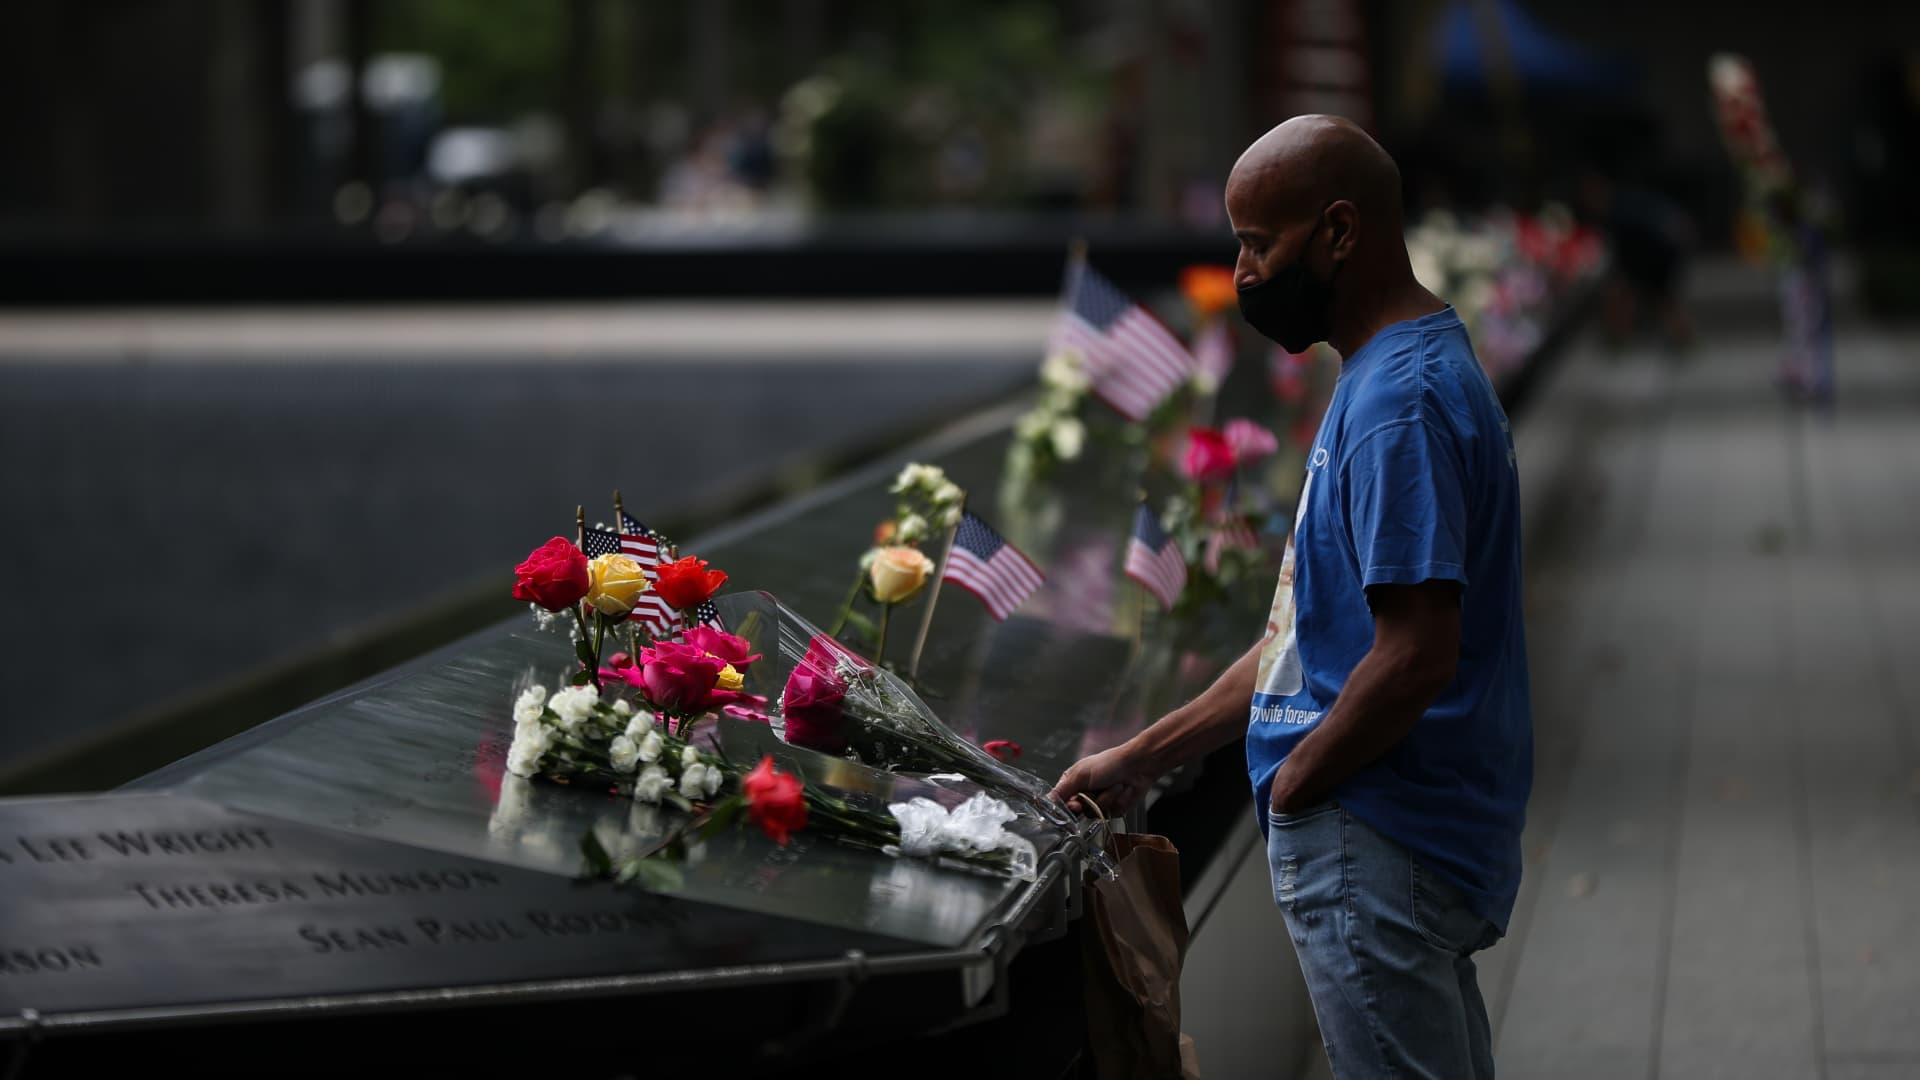 Family members of 9/11 victims tribute their loved ones on the 19th anniversary of September 11 attacks in New York City, United States on September 11, 2020.